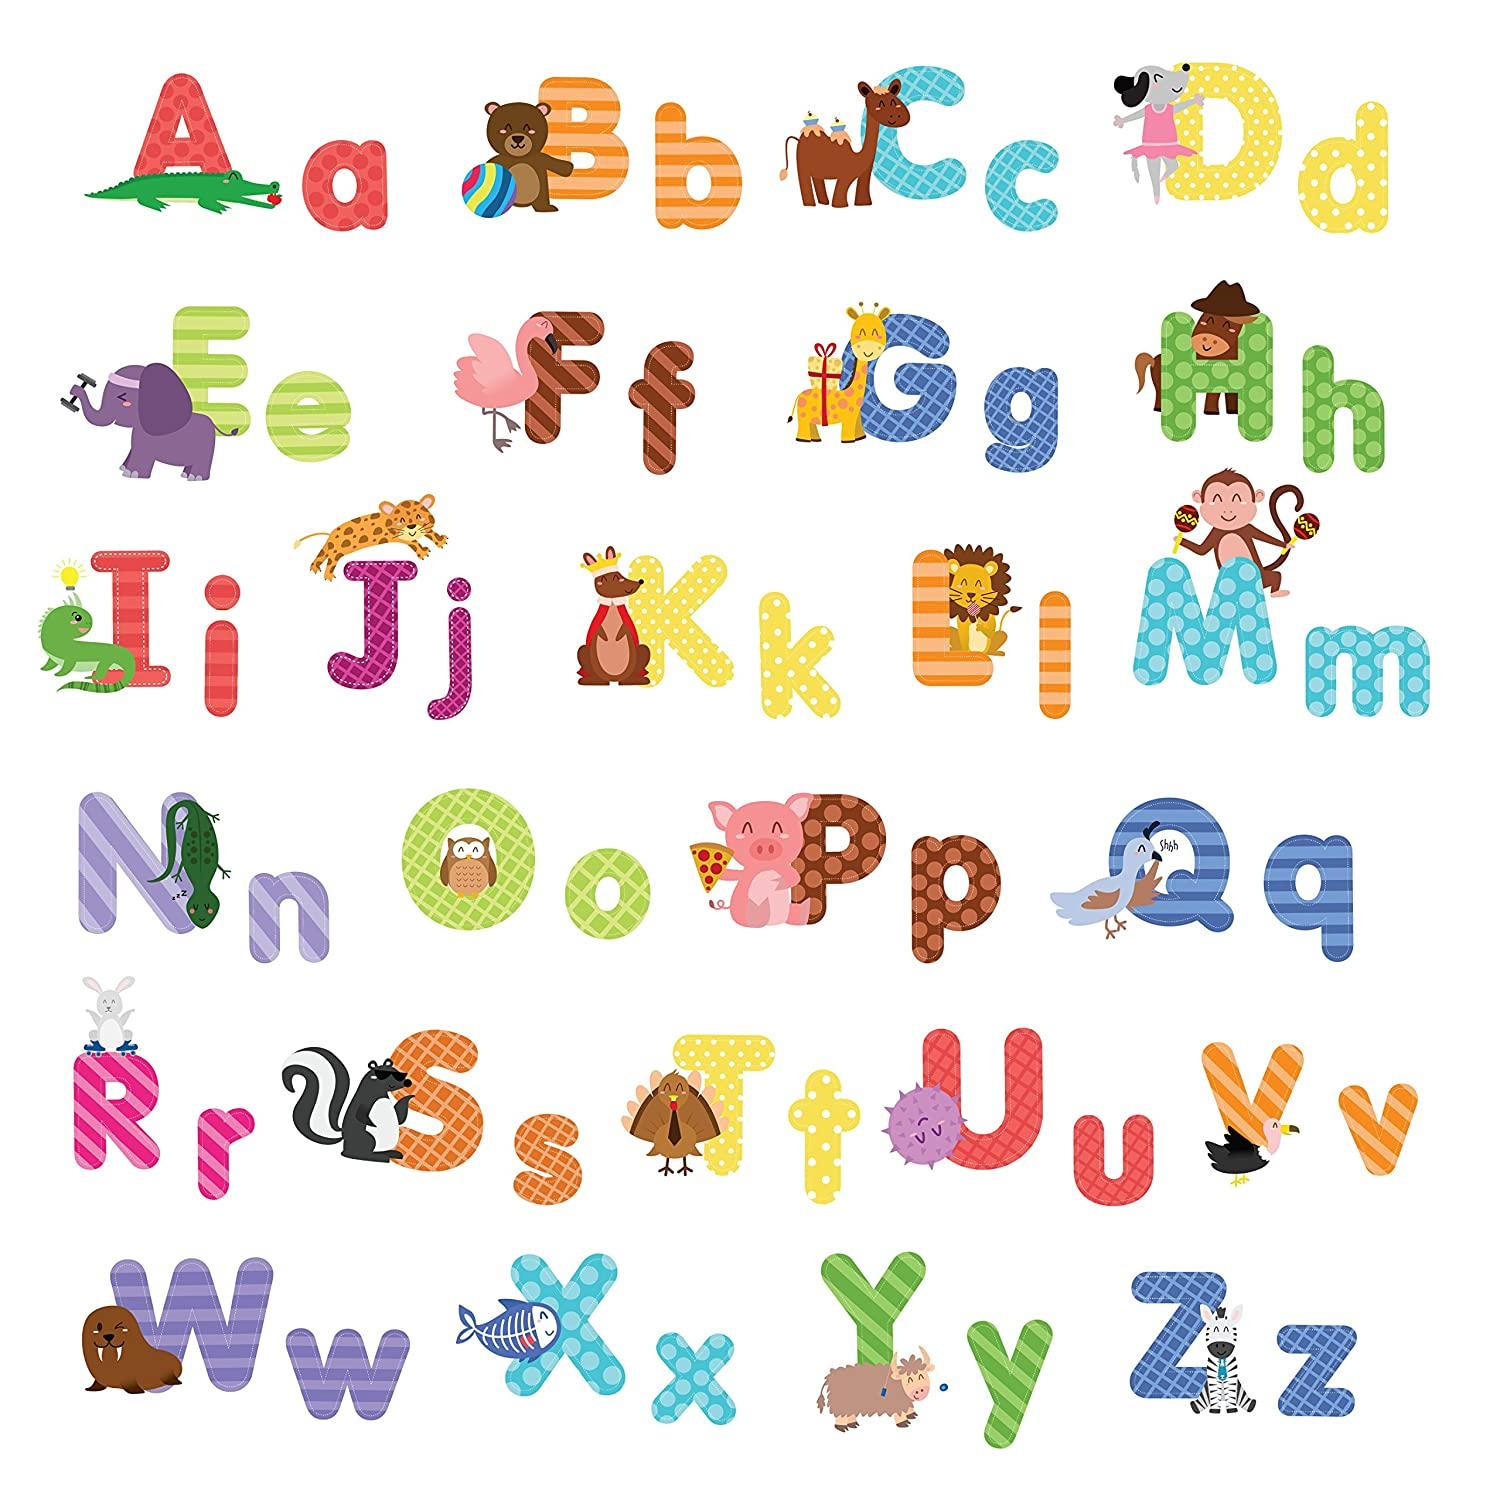 treepenguin Kids Animal Alphabet Wall Decals: Cute Removable ABC Wall Stickers for Toddler Boys and Girls Rooms - Large Educational Letters for Bedrooms Playrooms & Baby Nursery Wall Decor WDCANA52